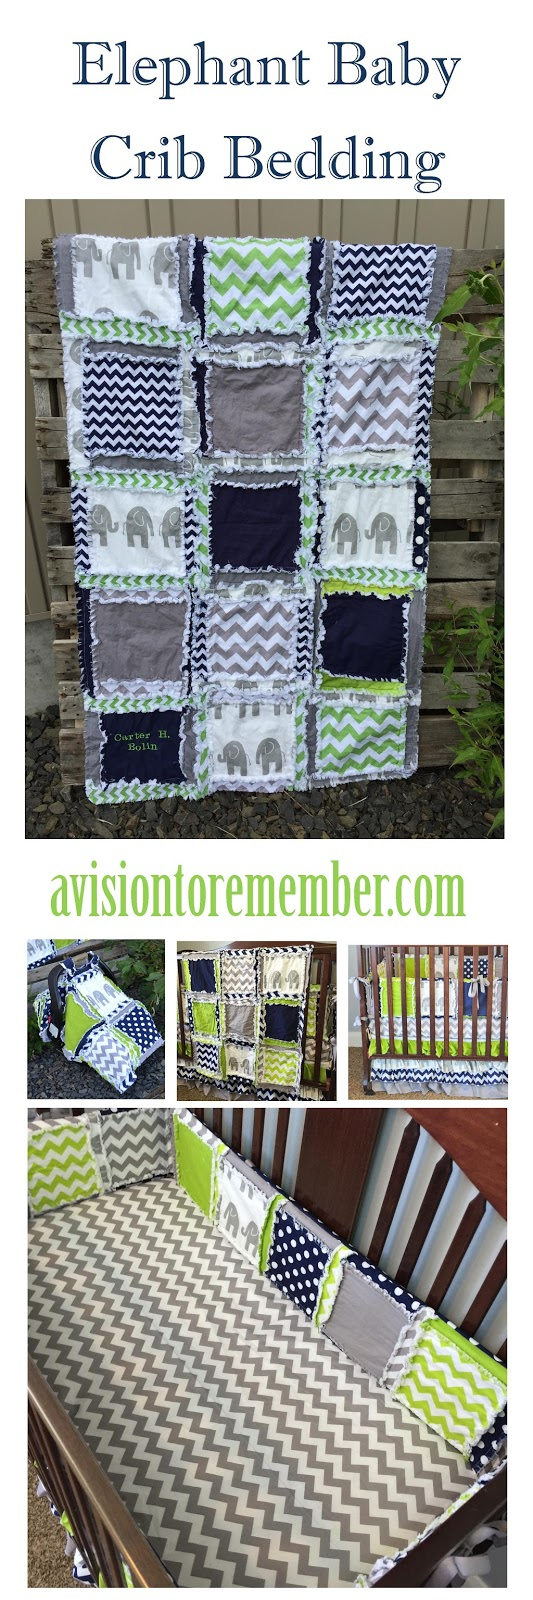 Elephant Baby Crib Bedding by A Vision to Remember